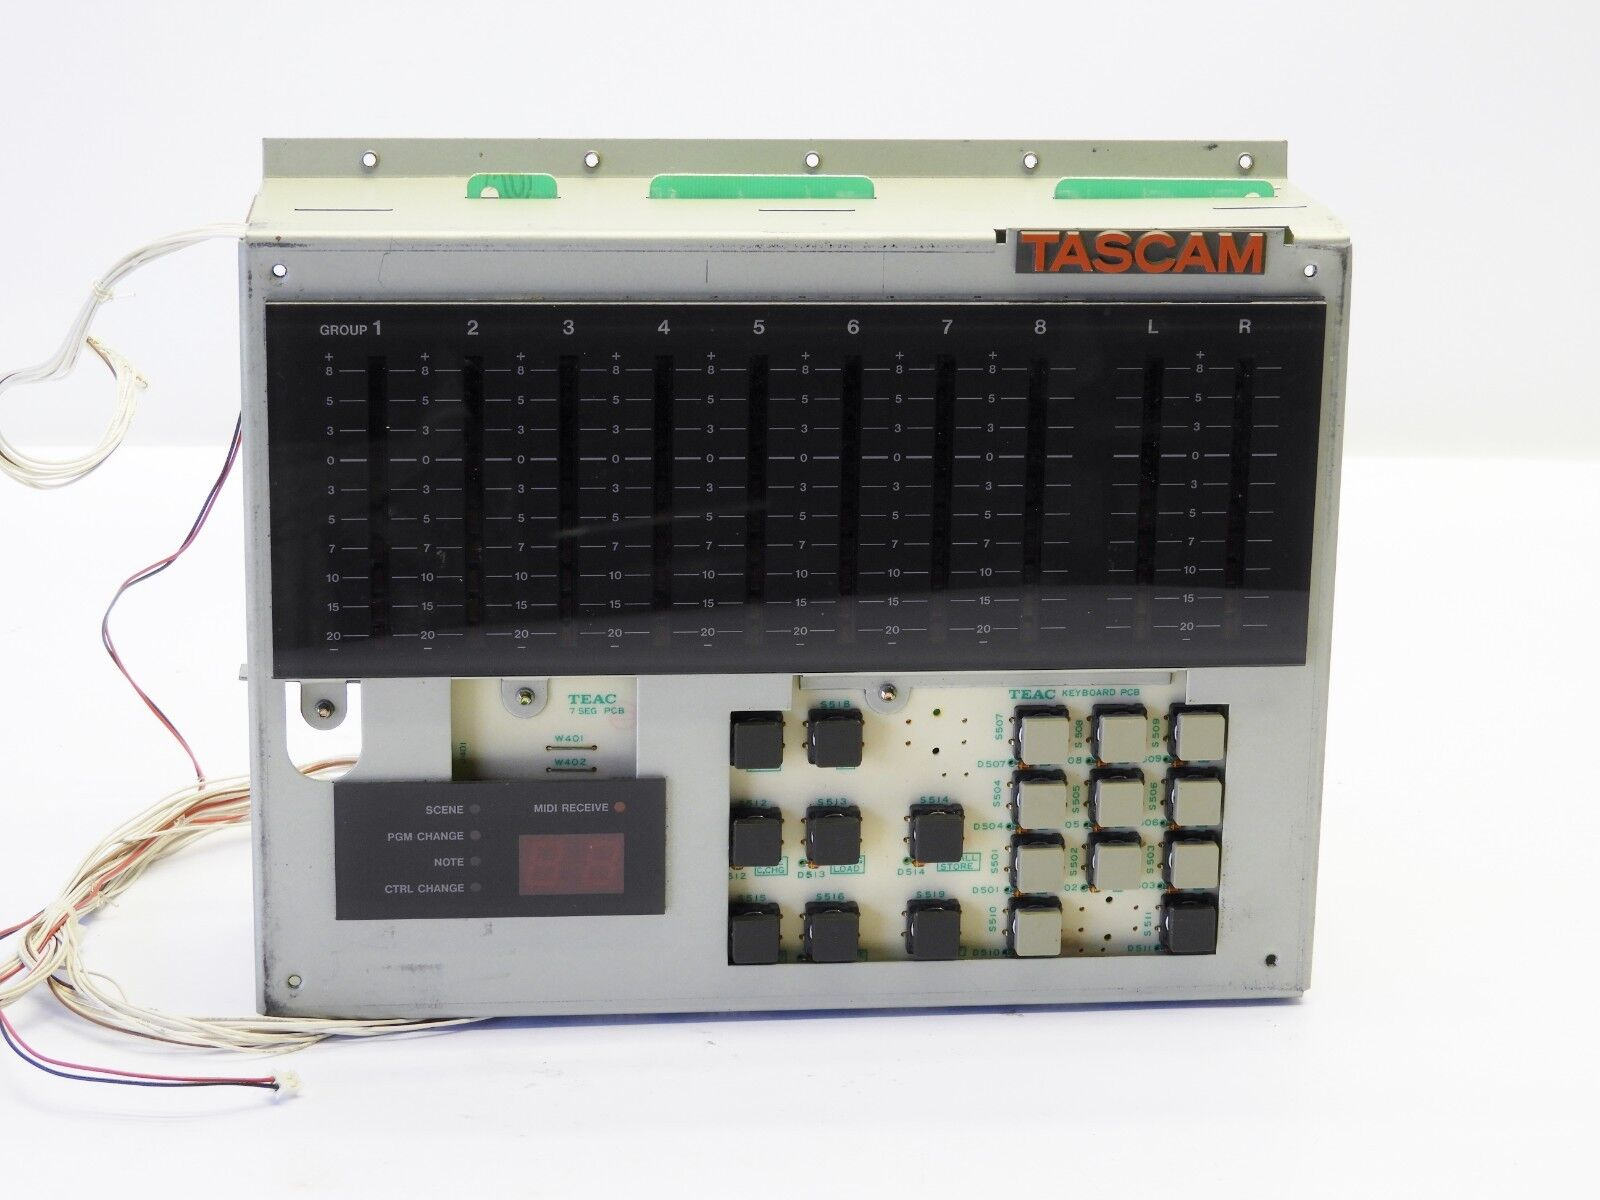 TASCAM M 2500 Series Control Panel Assembly